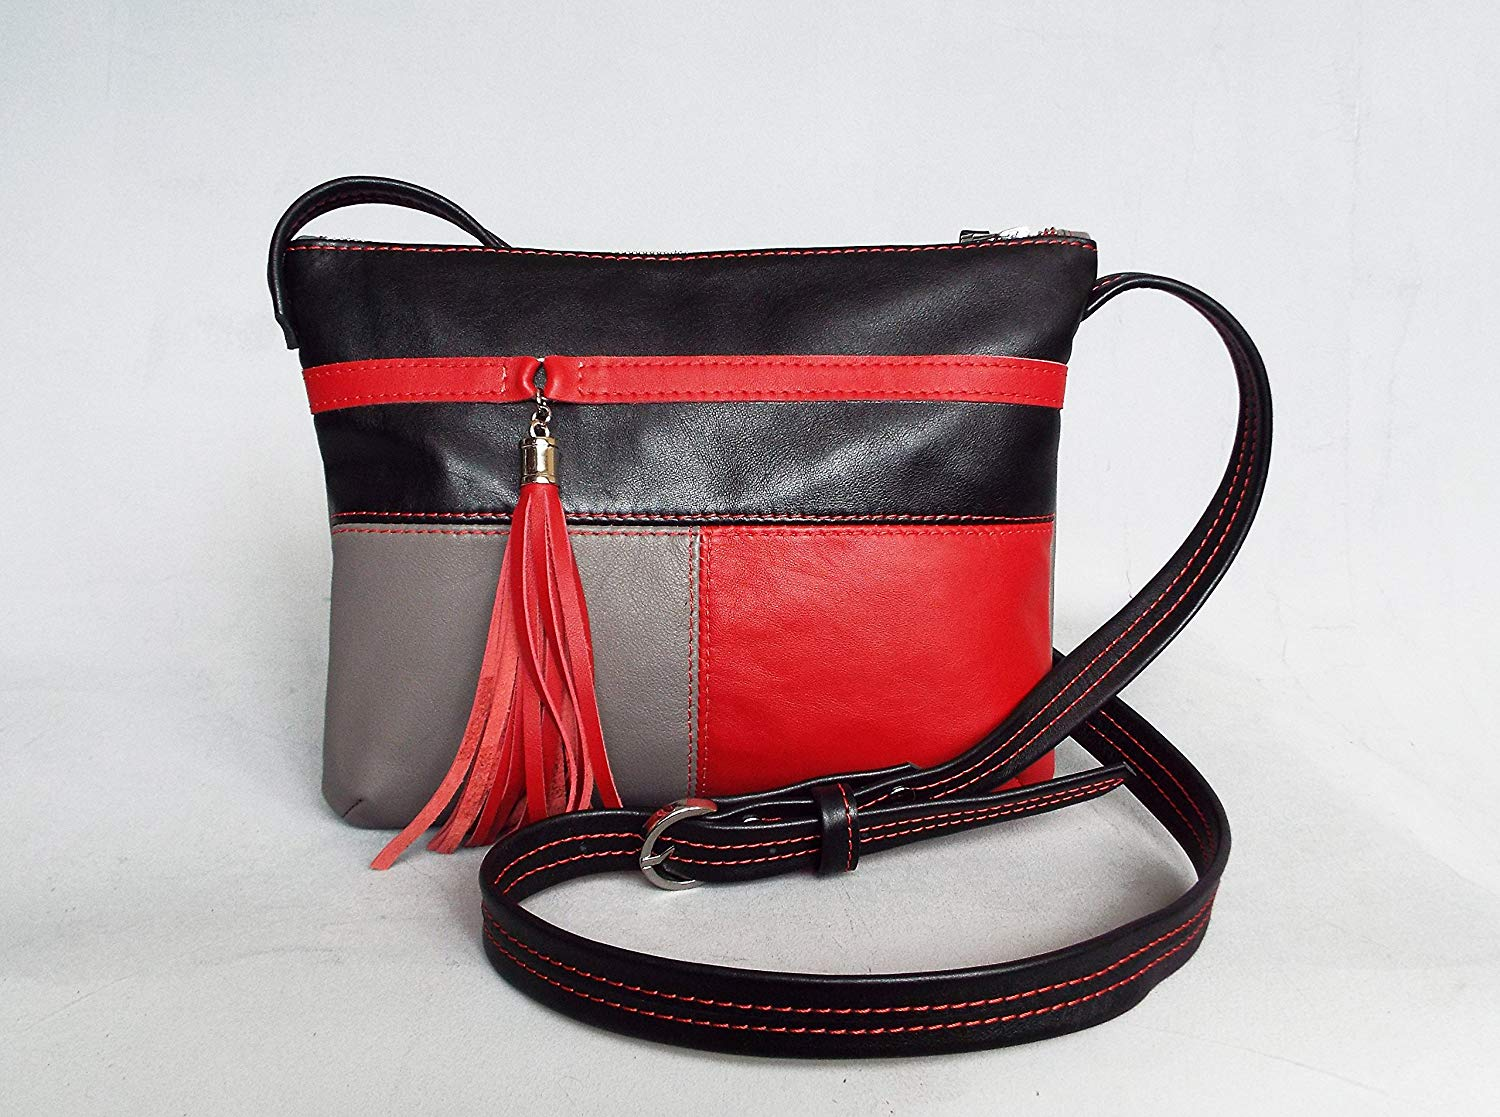 4f8391398d Get Quotations · Leather cross body bag. Red gray black leather bag. Small  leather tassel purse.